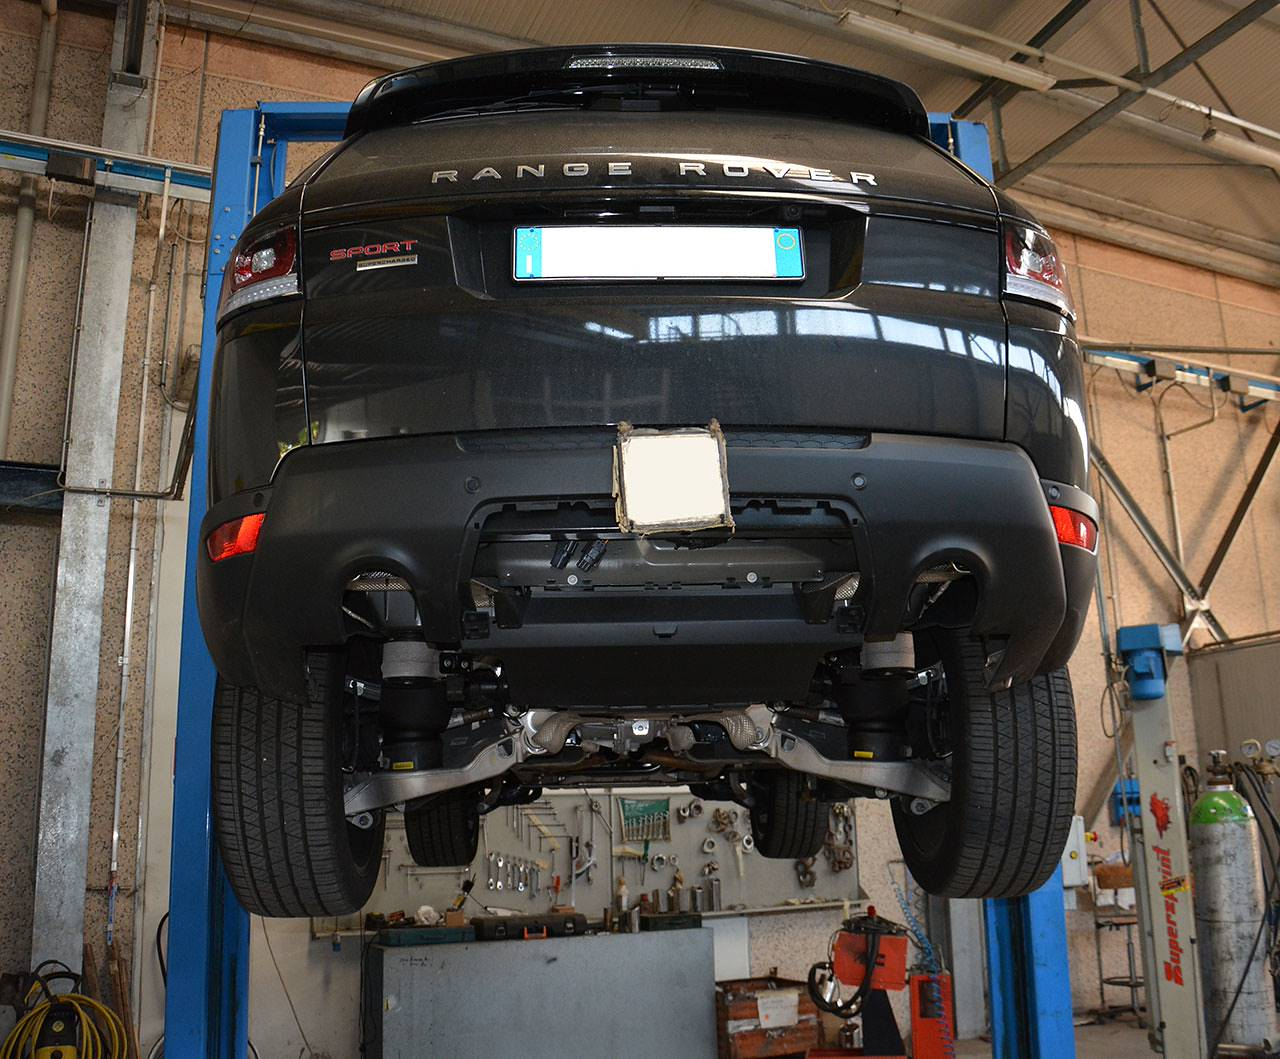 Range Rover Sport mk2 L494 5.0 Supercharged - Sport exhaust development by Supersprint - Rear mufflers with temporary exit pipes testing